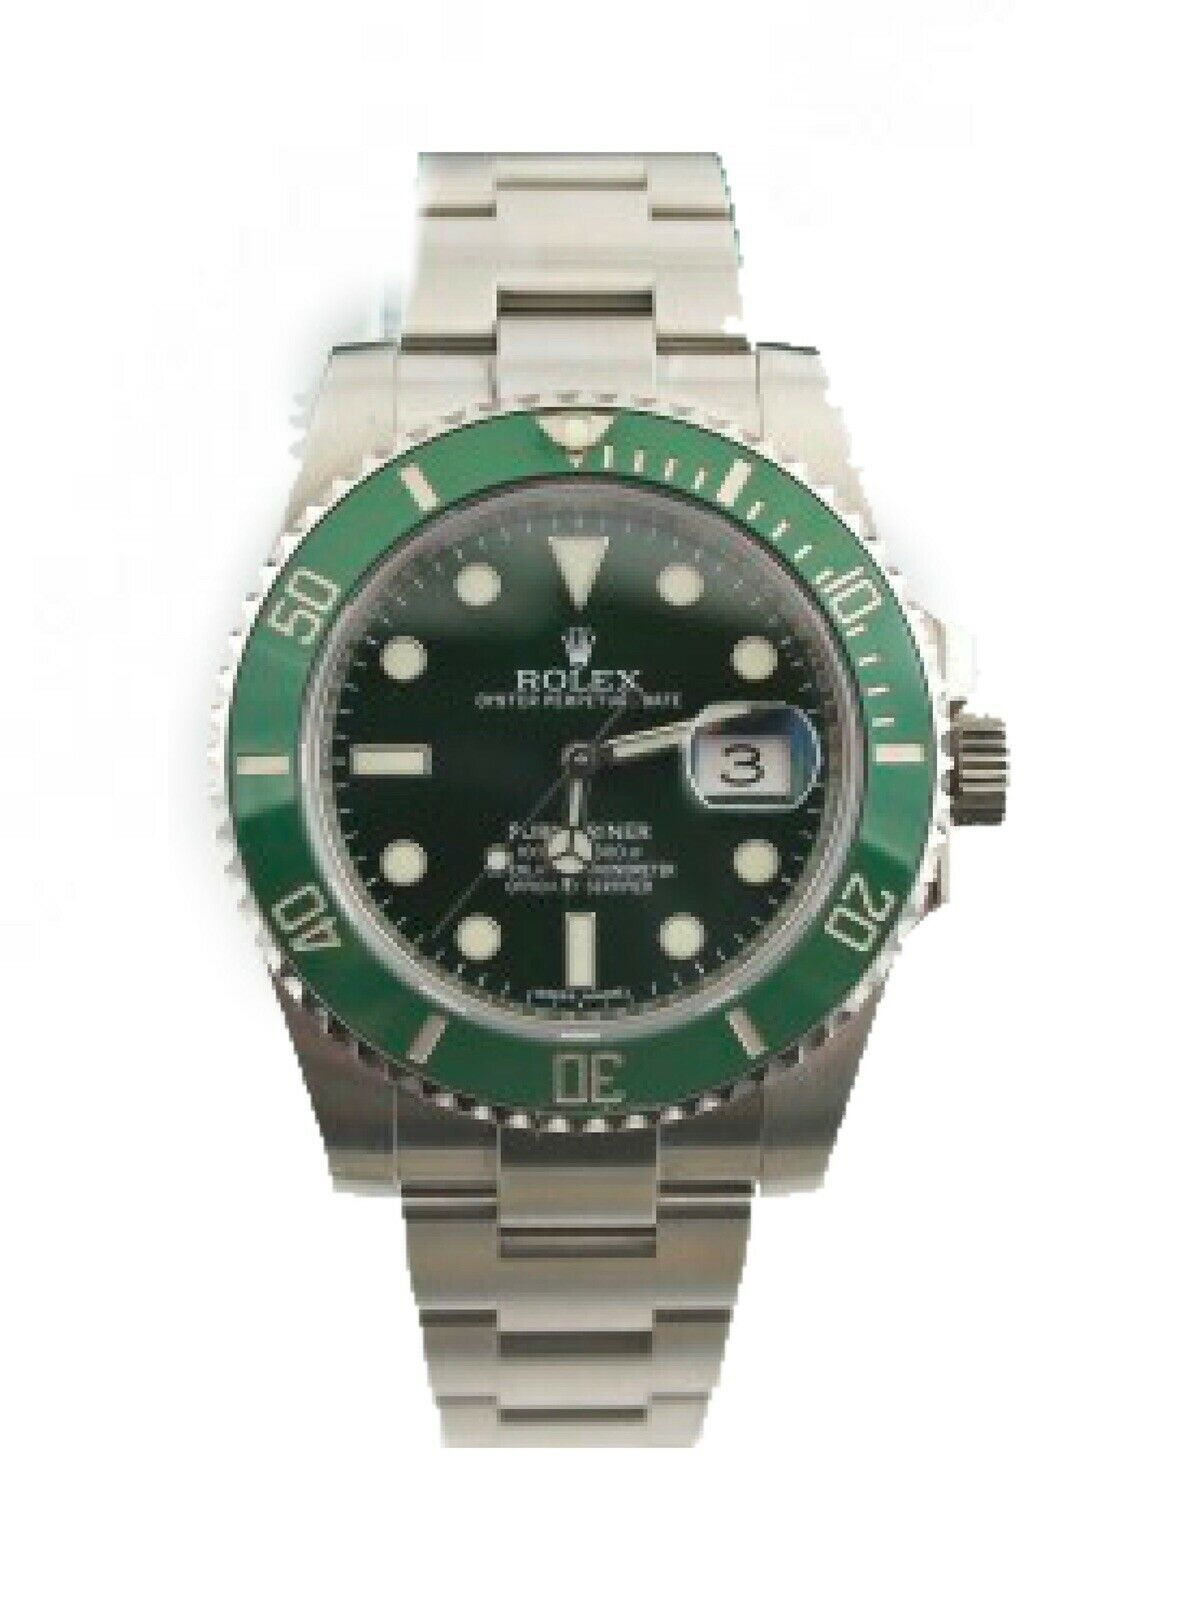 MINT ROLEX SUBMARINER HULK 116610LV GREEN CERAMIC MENS 40MM WATCH BOX & PAPERS